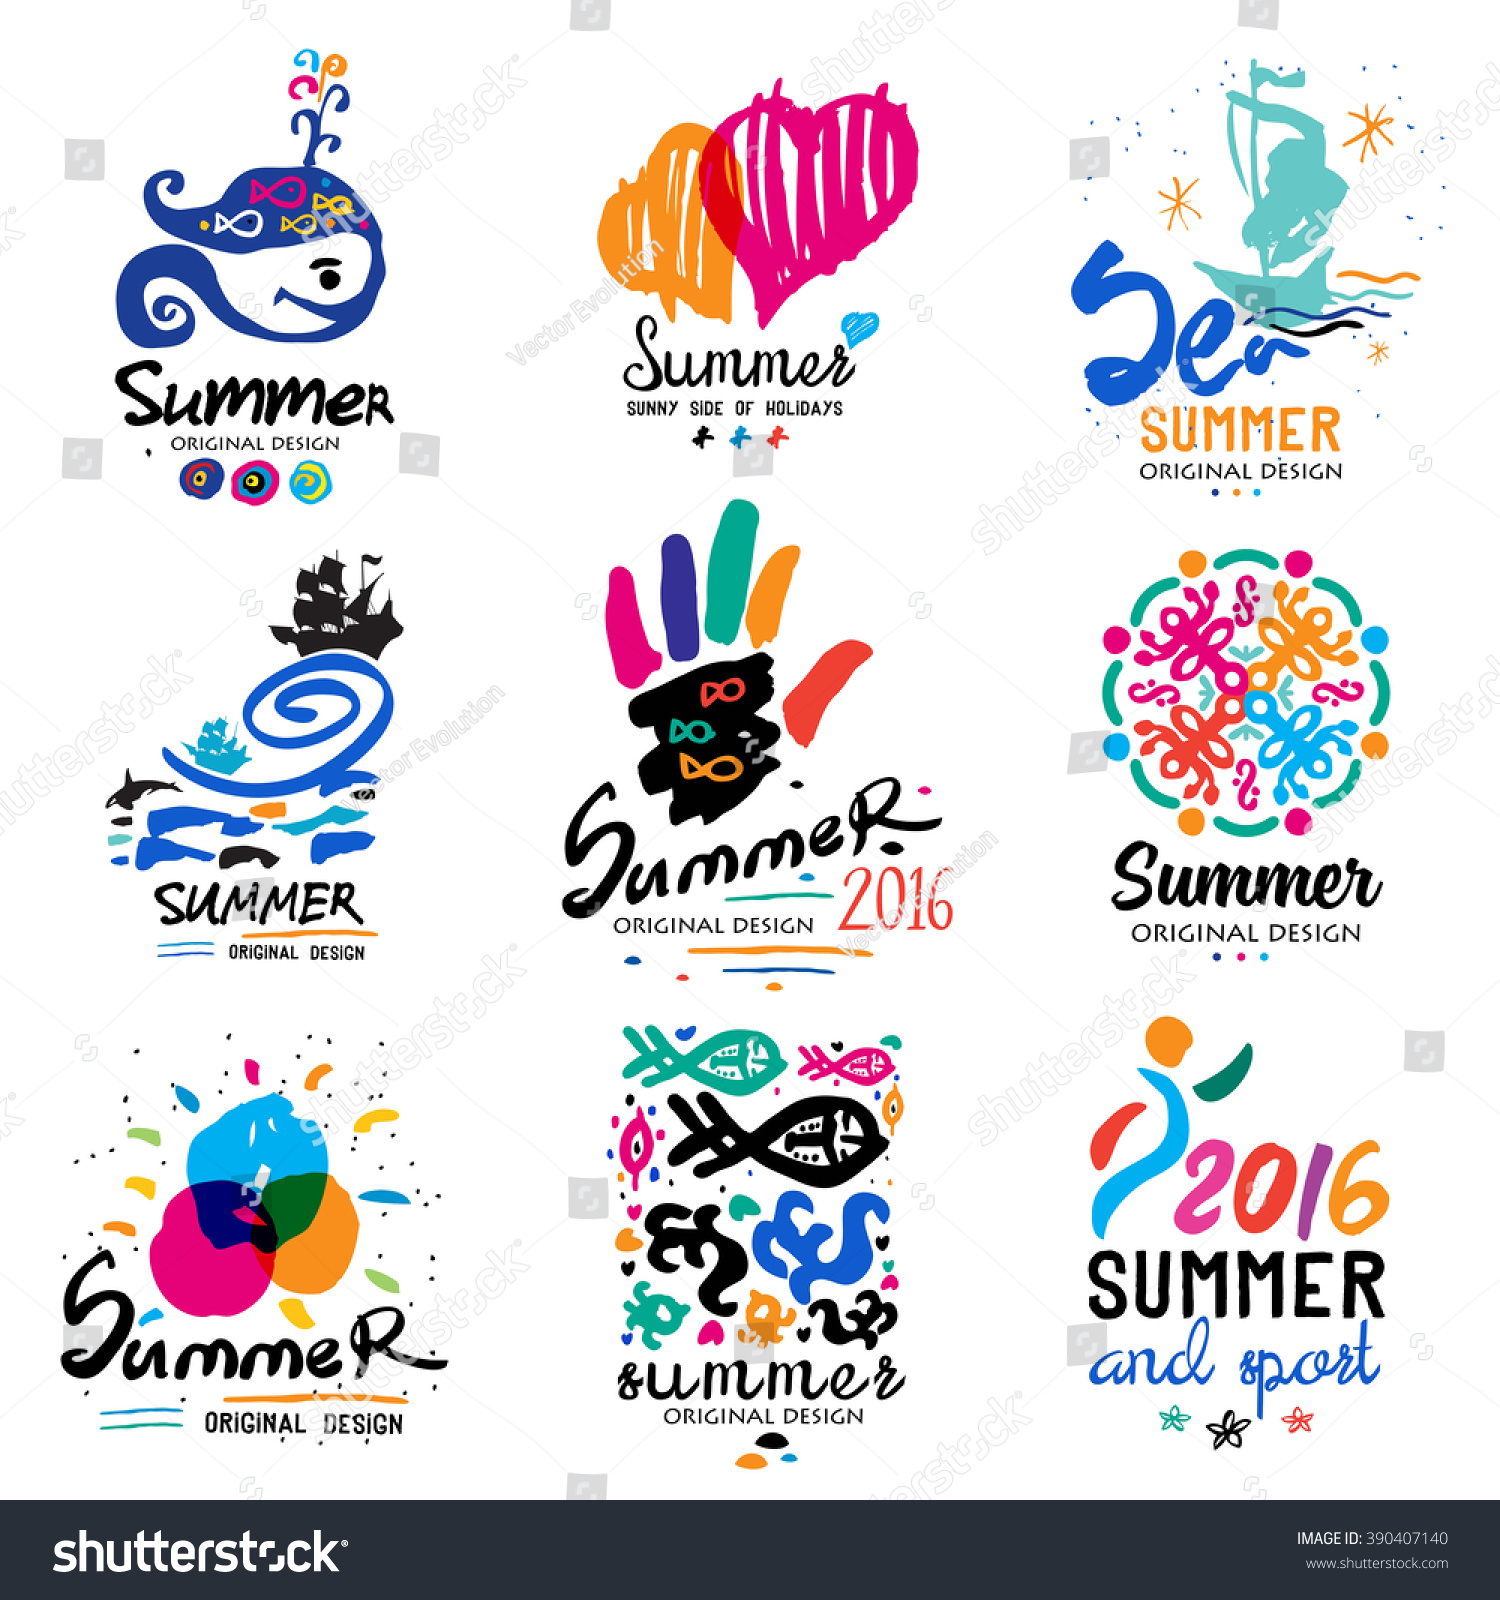 Summer Vacation Logo Tropical Paradise Weekend Tour Beach Design Elements Adventure